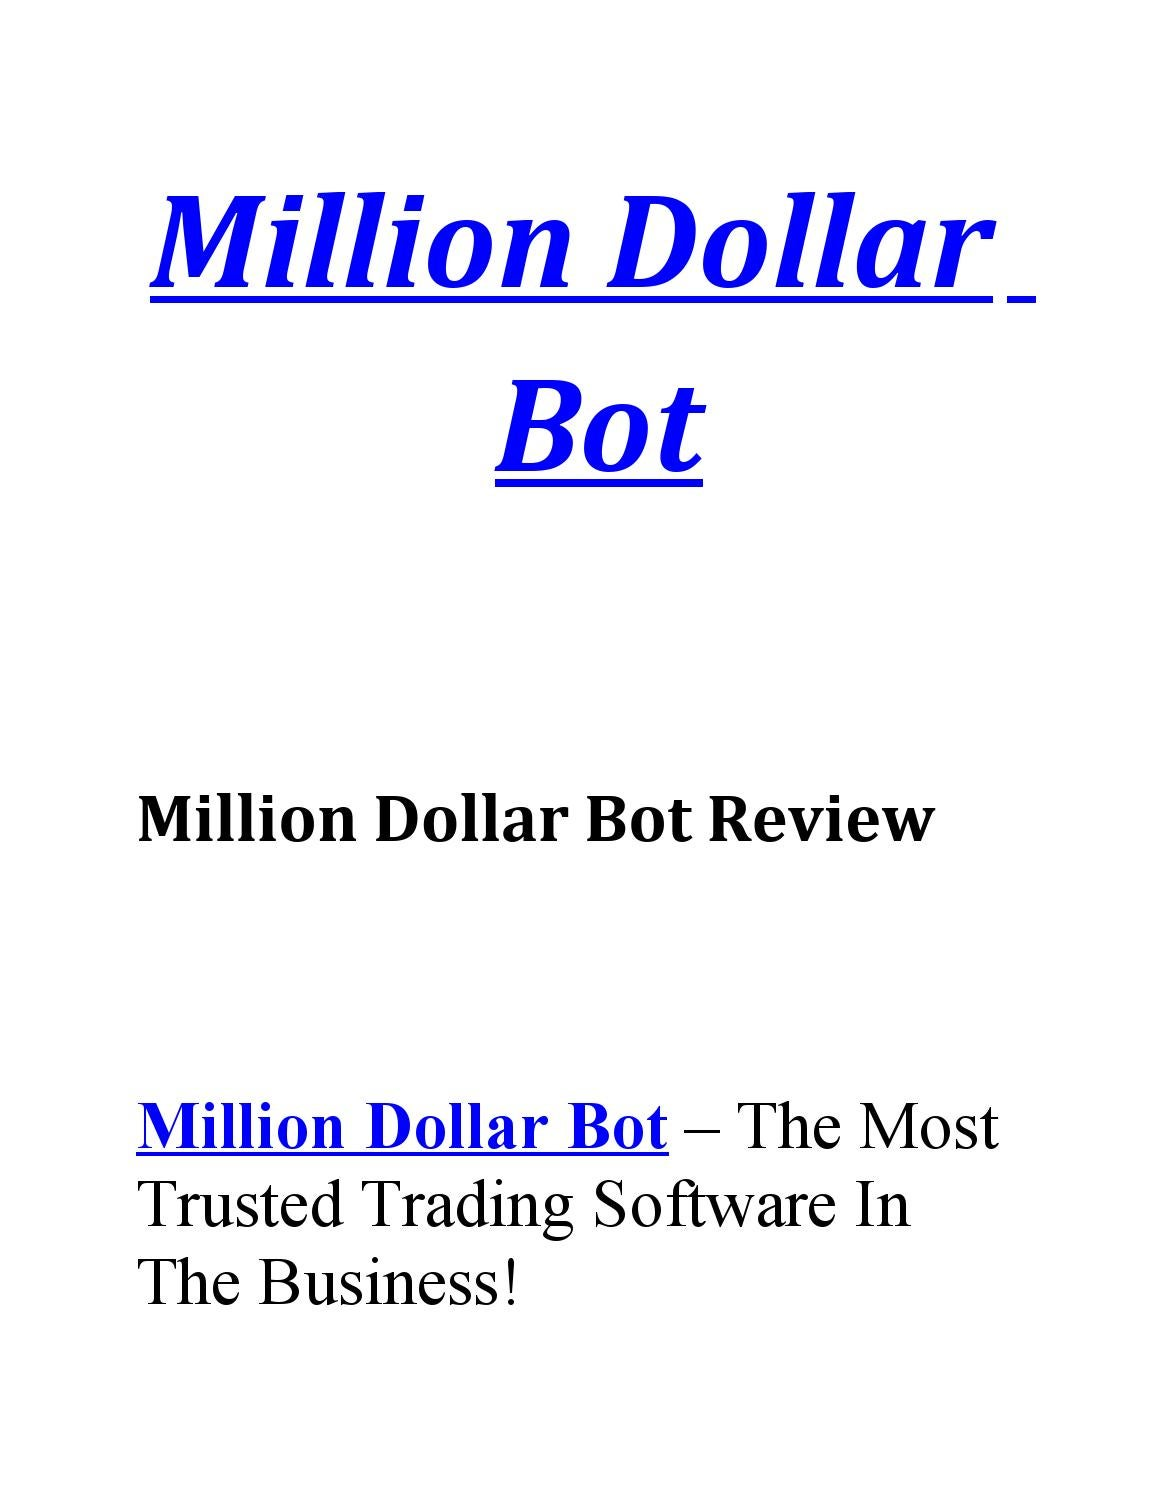 Million Dollar Bot By Tradingsystems